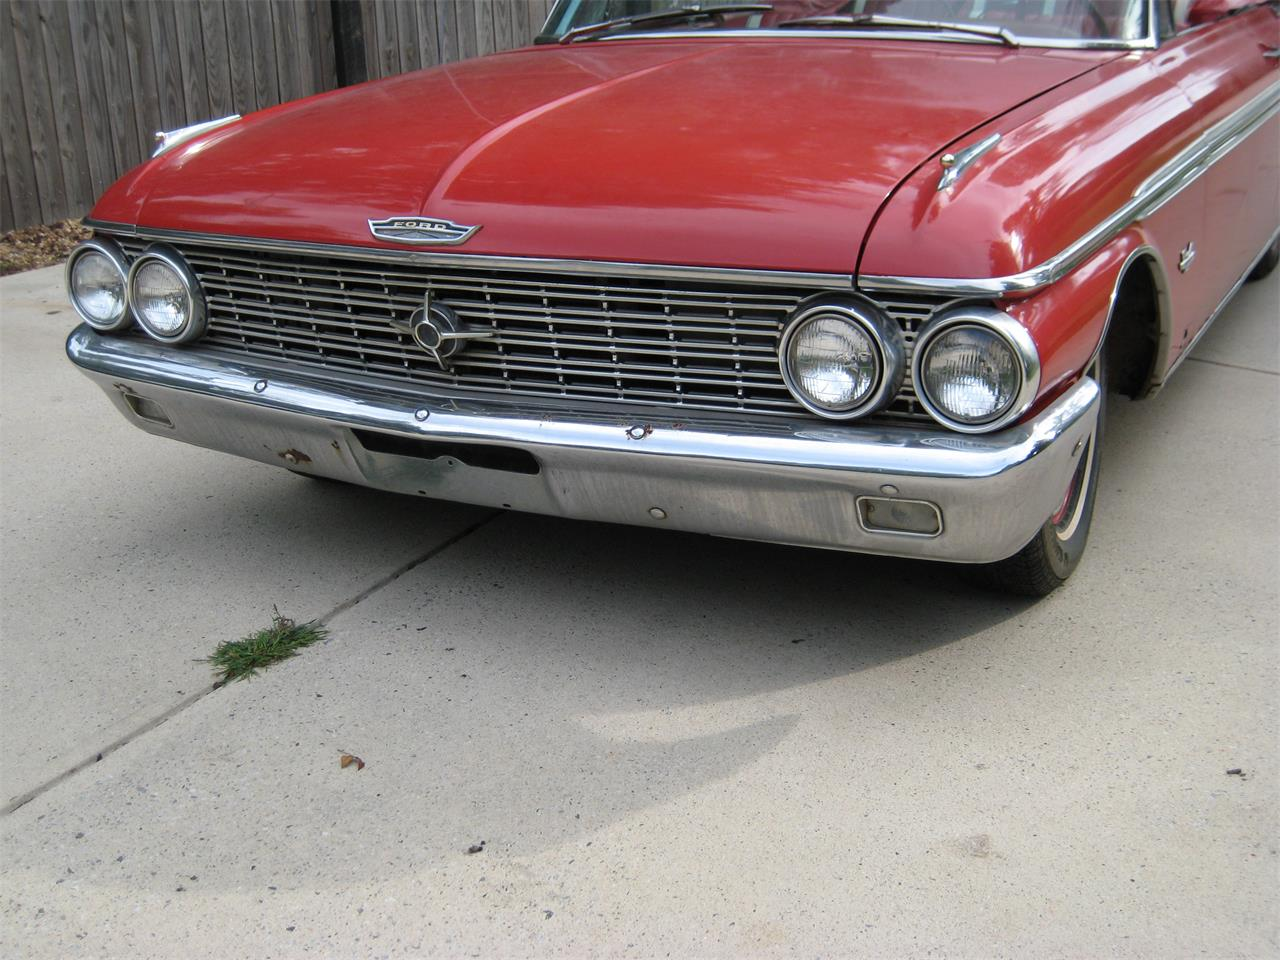 Large Picture of '62 Ford Sunliner located in Georgia Offered by a Private Seller - F46R